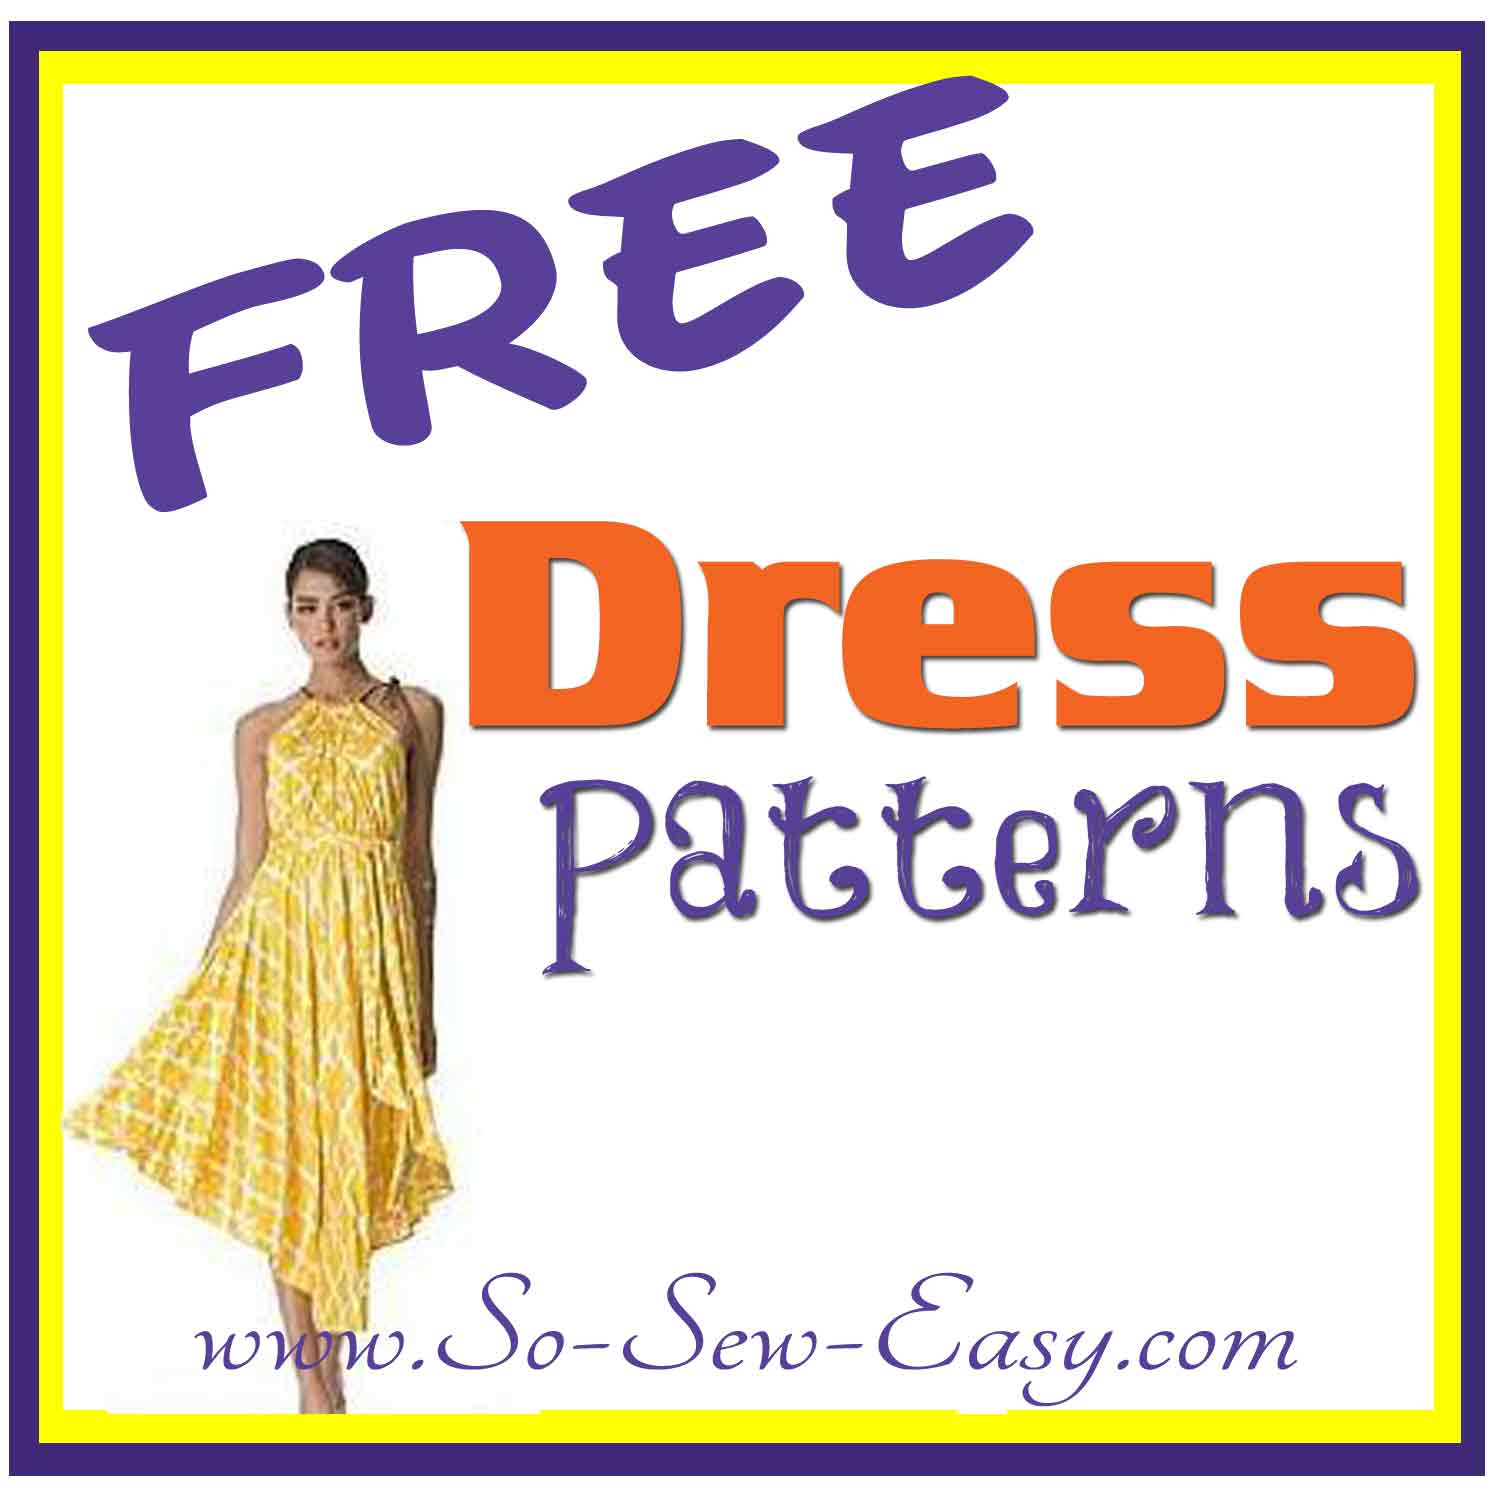 FREE Dress patterns listing